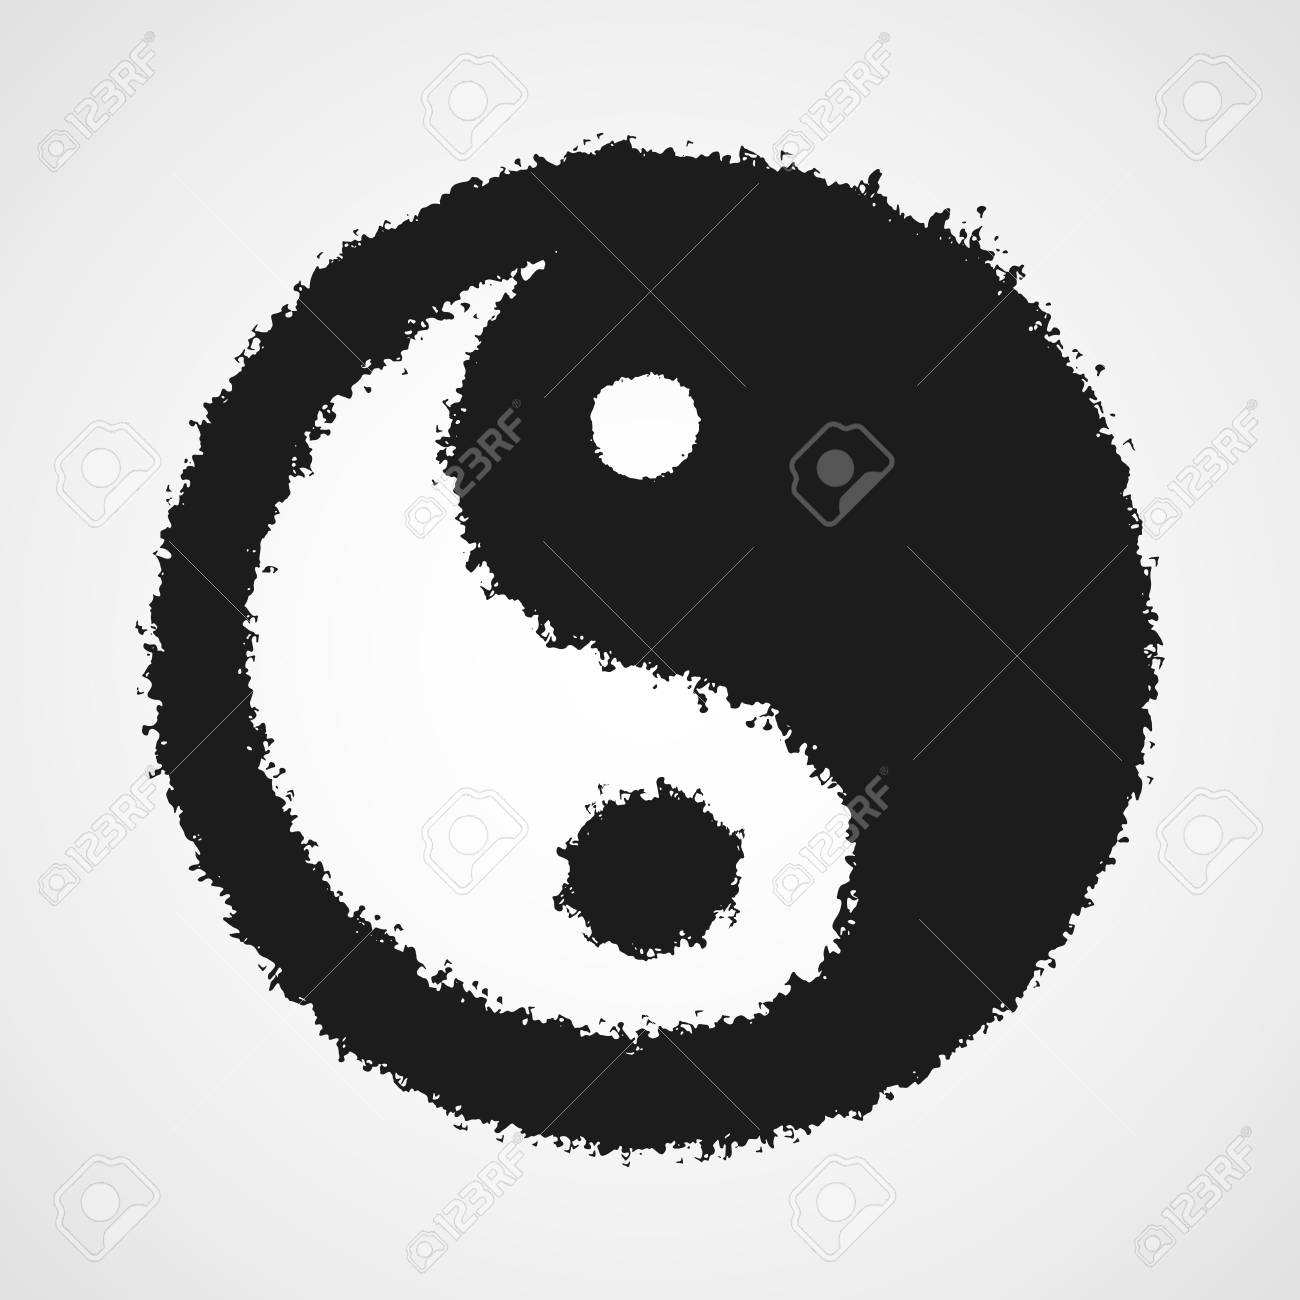 Black Drawing Of The Yin Yang Symbol In Doodle Style Vector